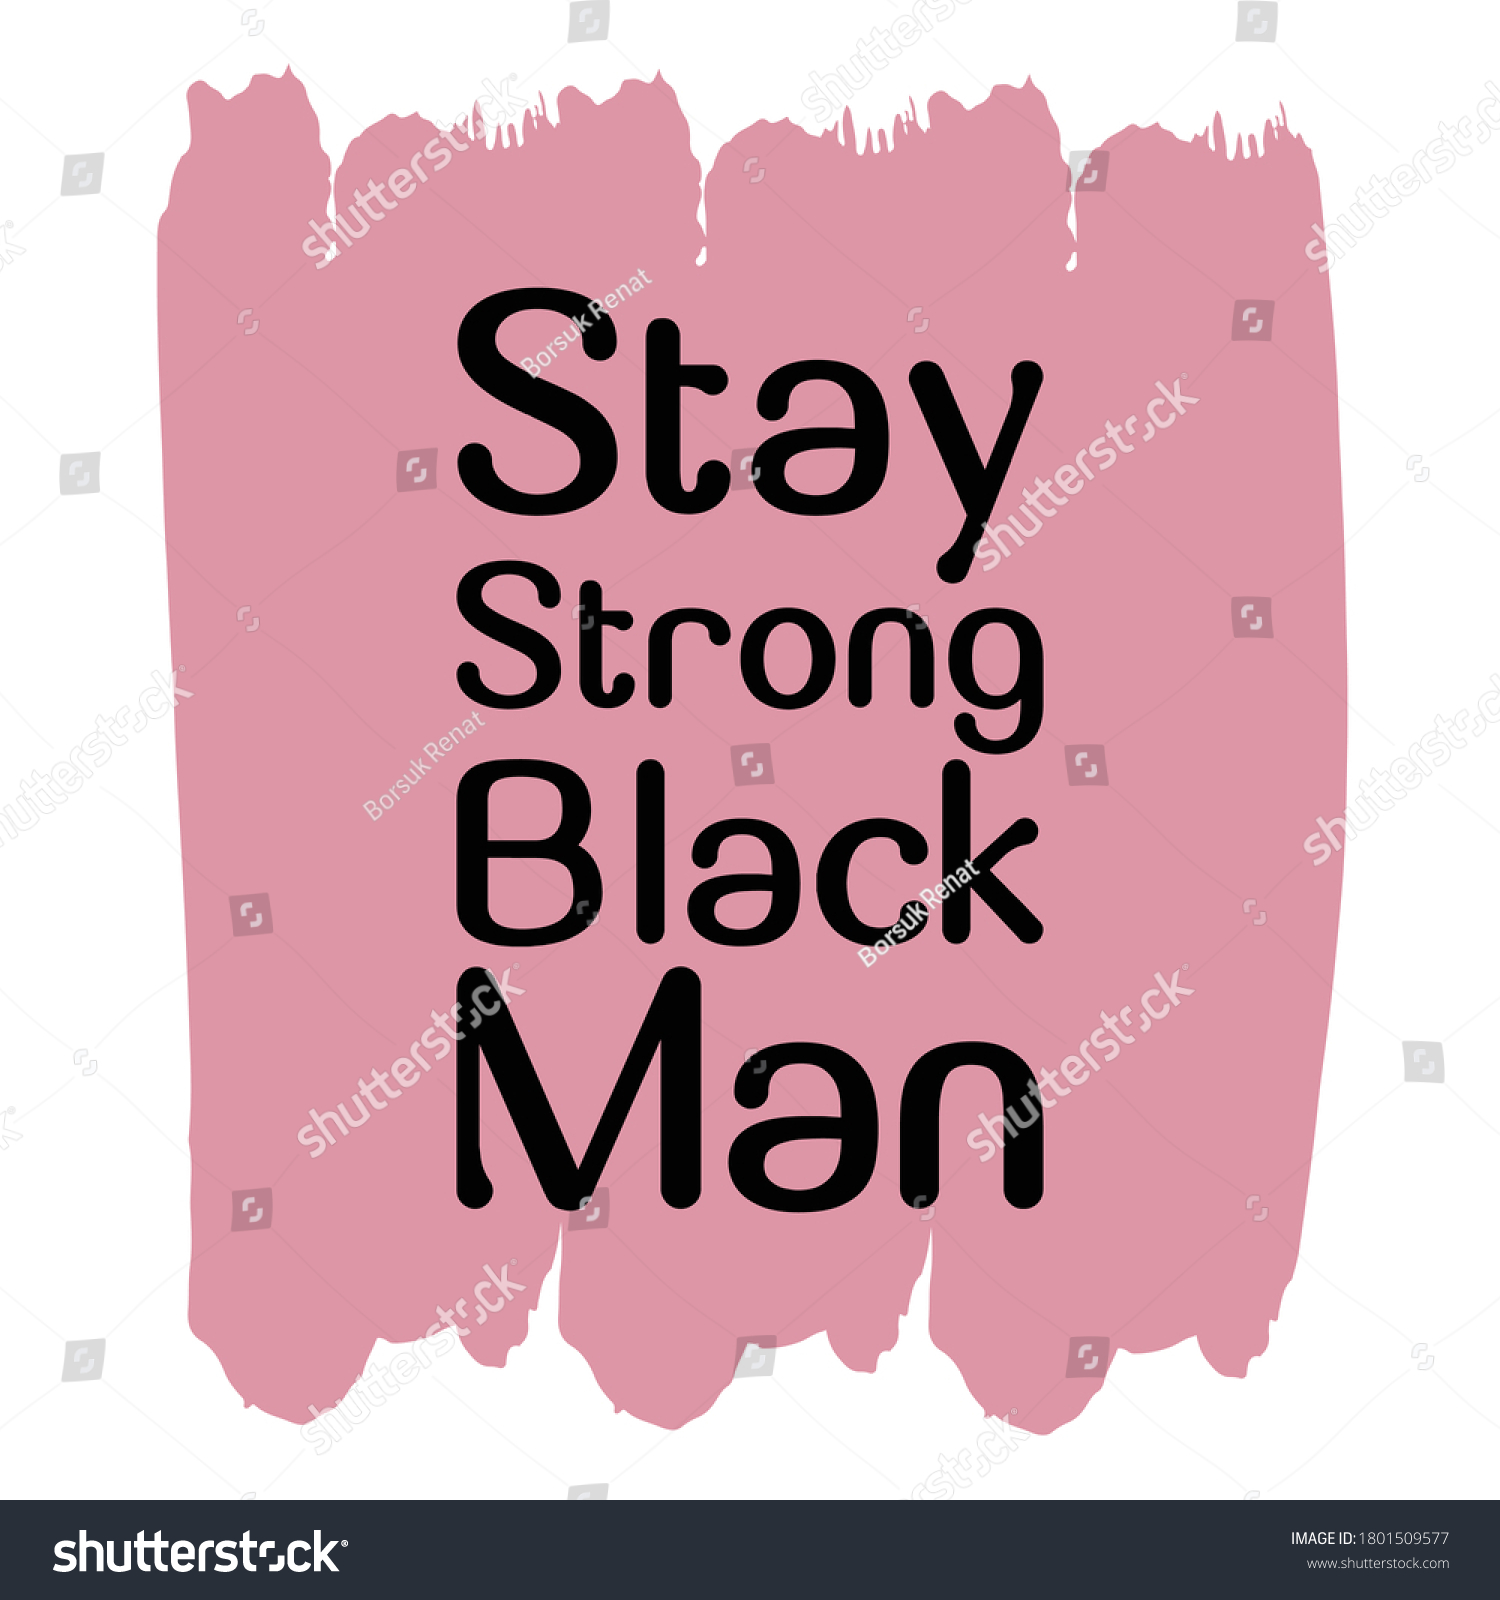 Quotes strong and sayings black man I'm A